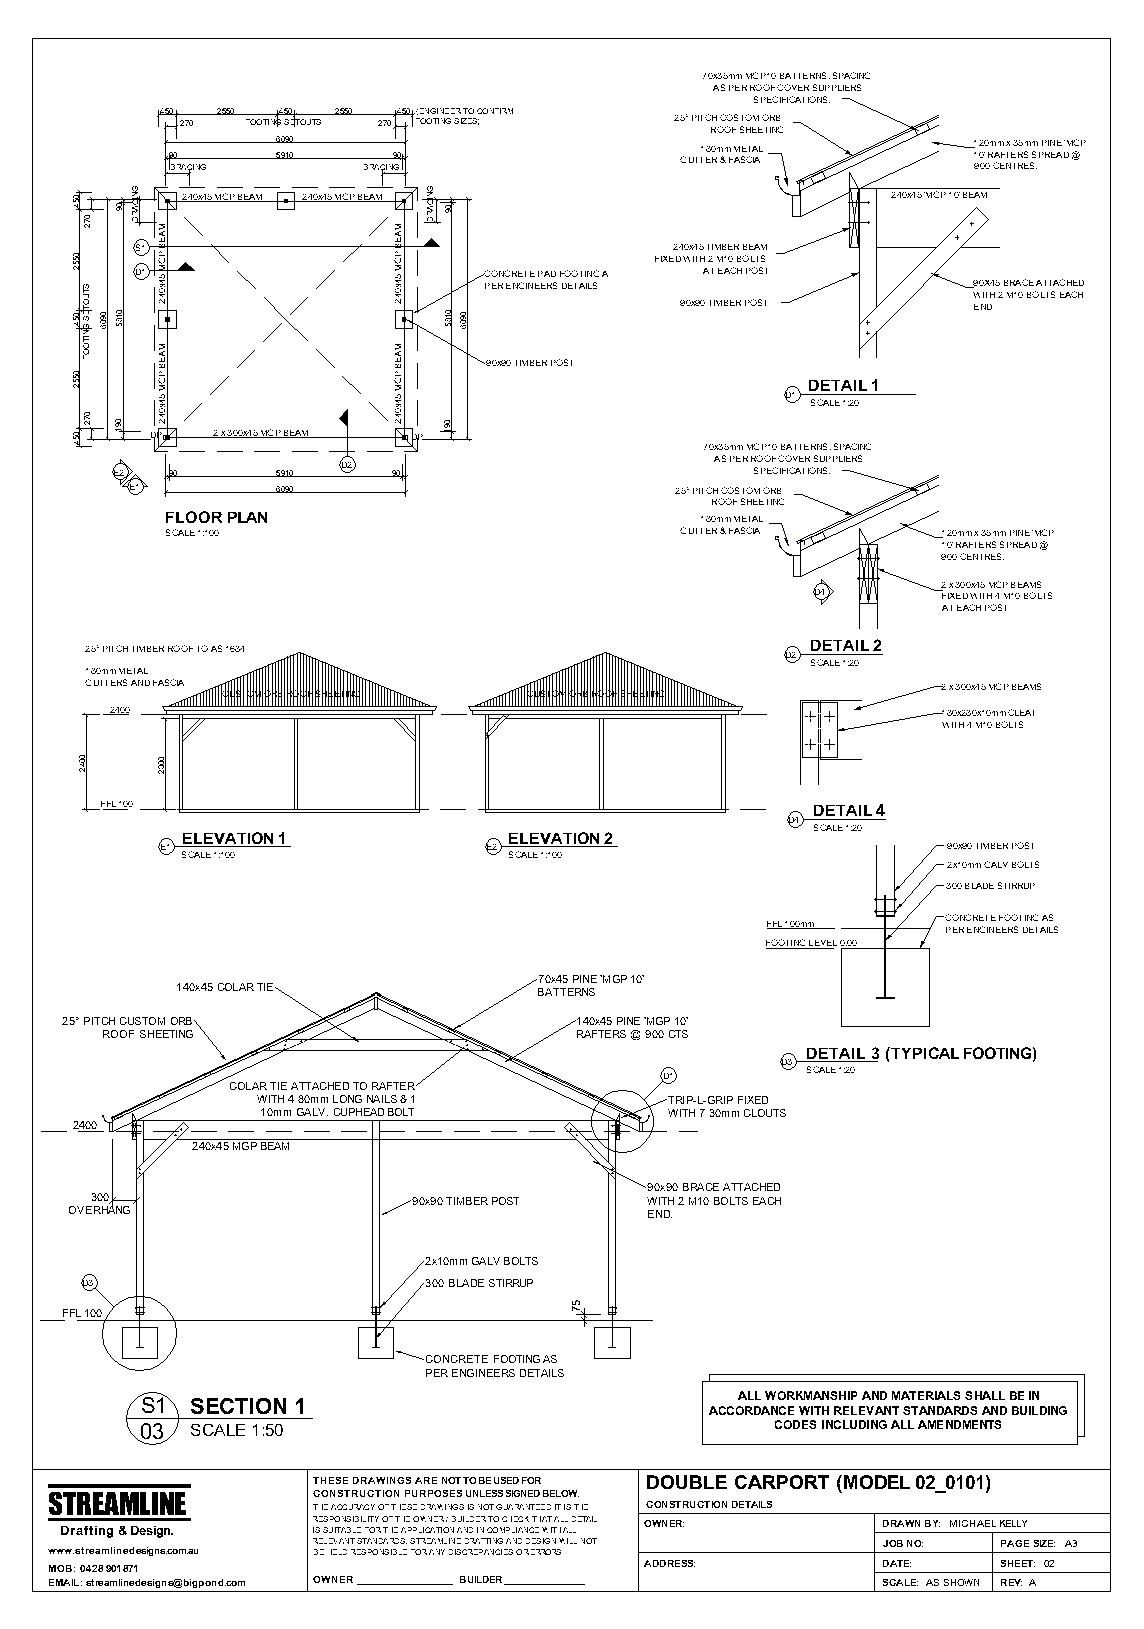 Download Free Carport Plans Building F Appetizers Pinterest